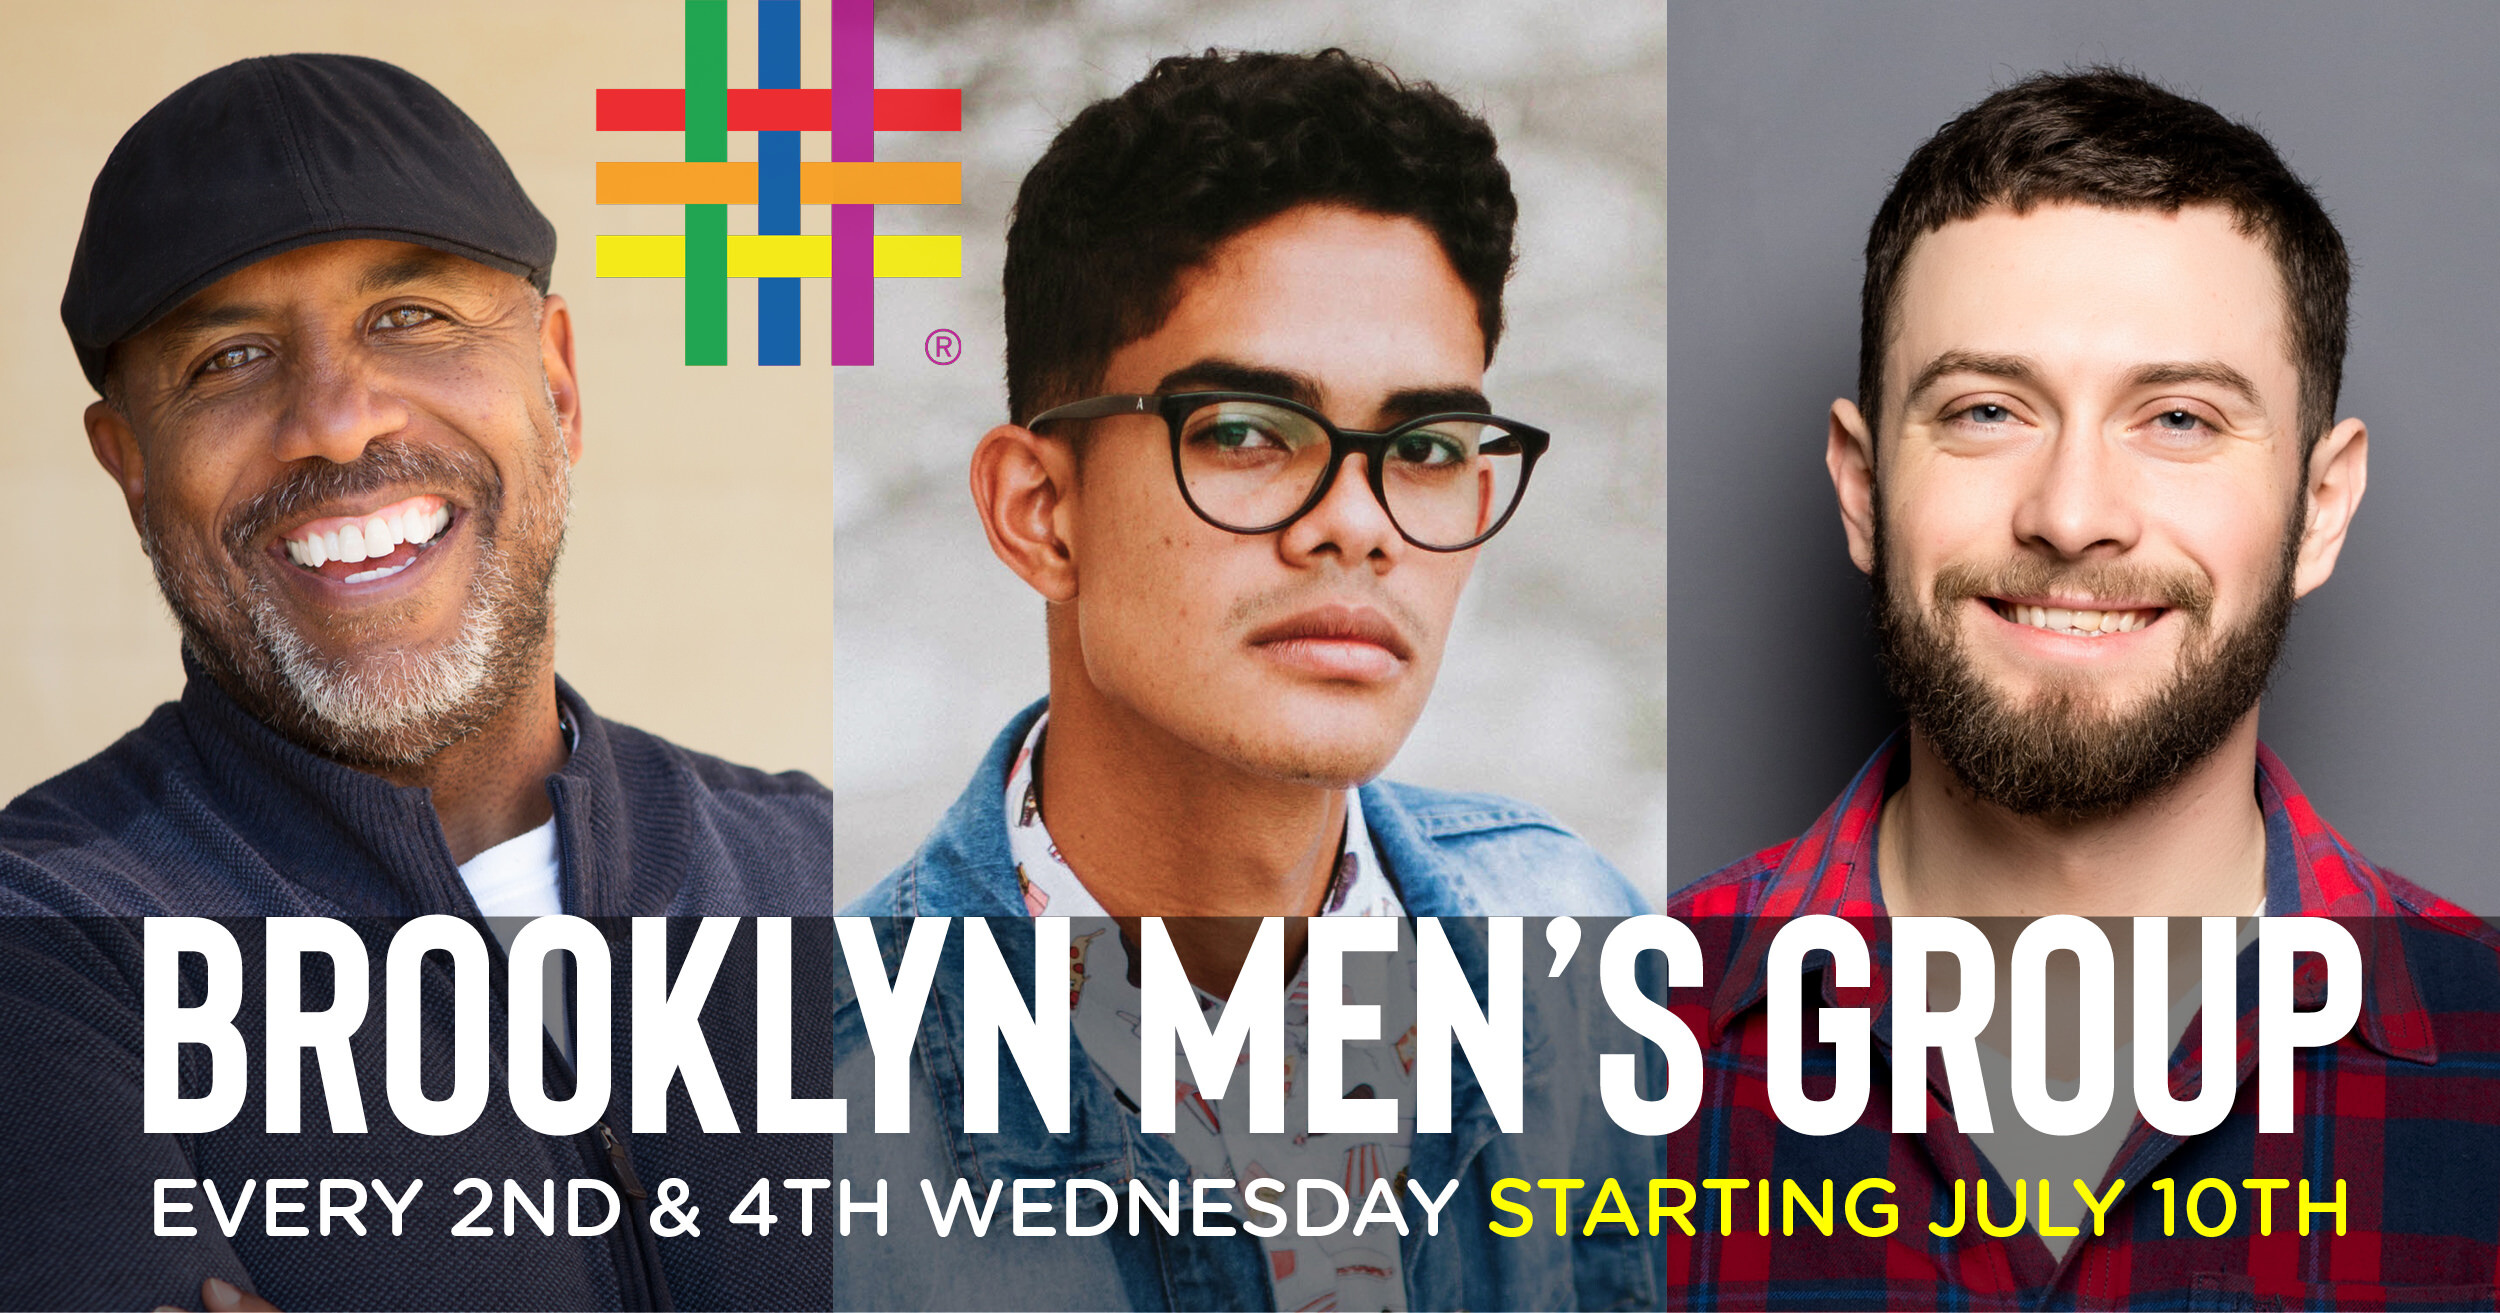 Brooklyn Men's Group at Brooklyn Community Pride Center